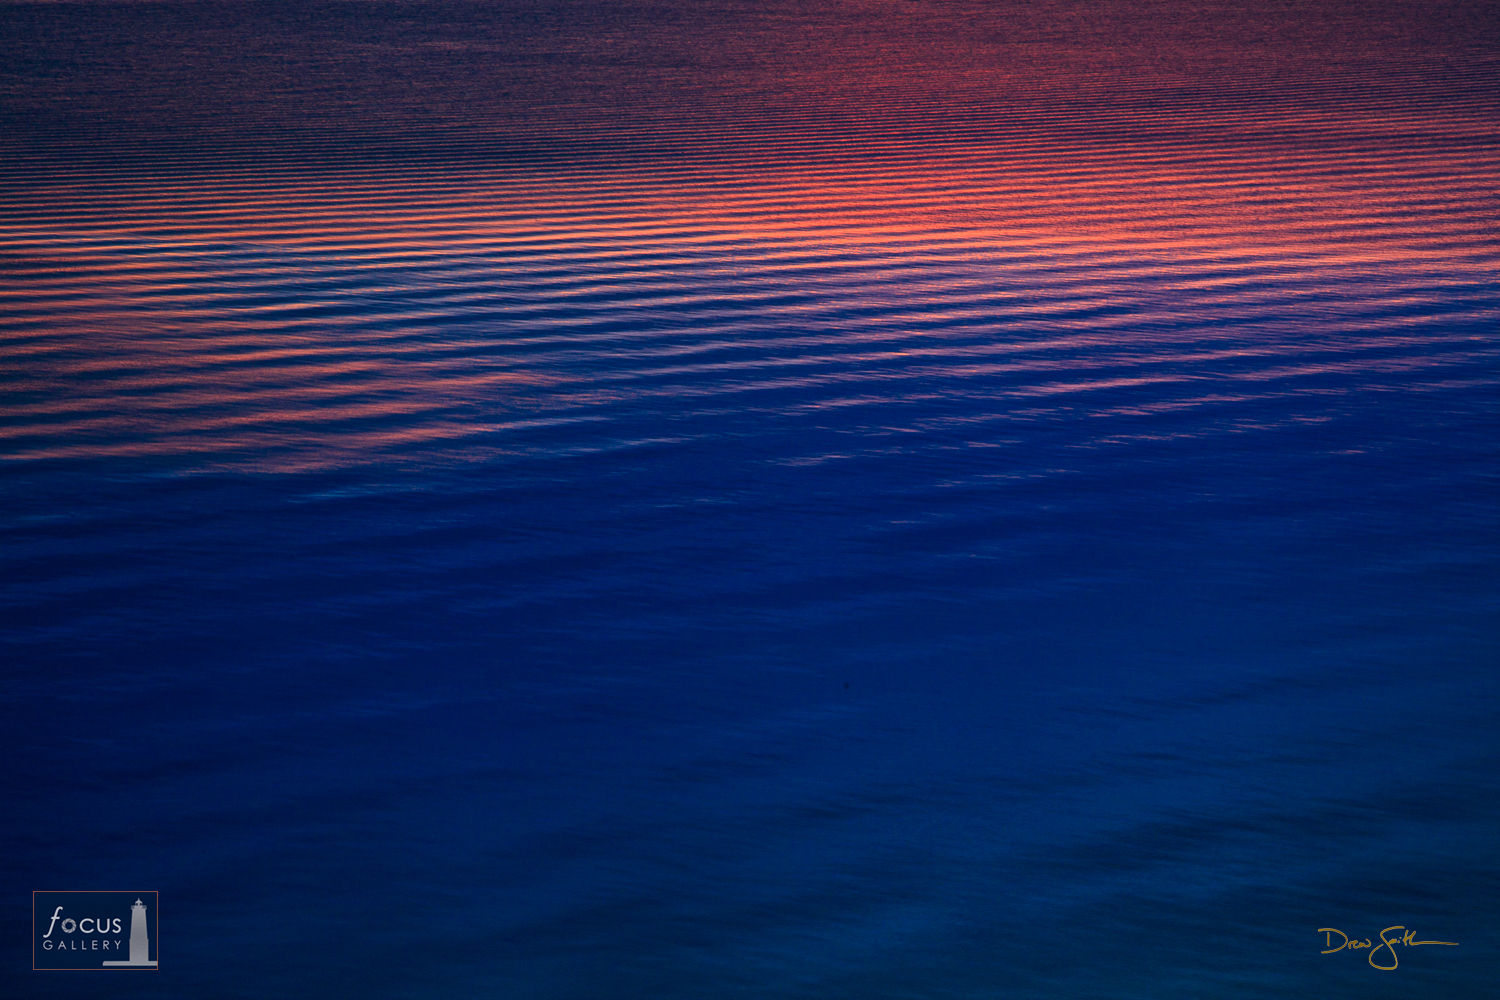 Photo © Drew Smith Waves on Lake Michigan reflect the dusk glow in the sky and appear like ripples on the water.